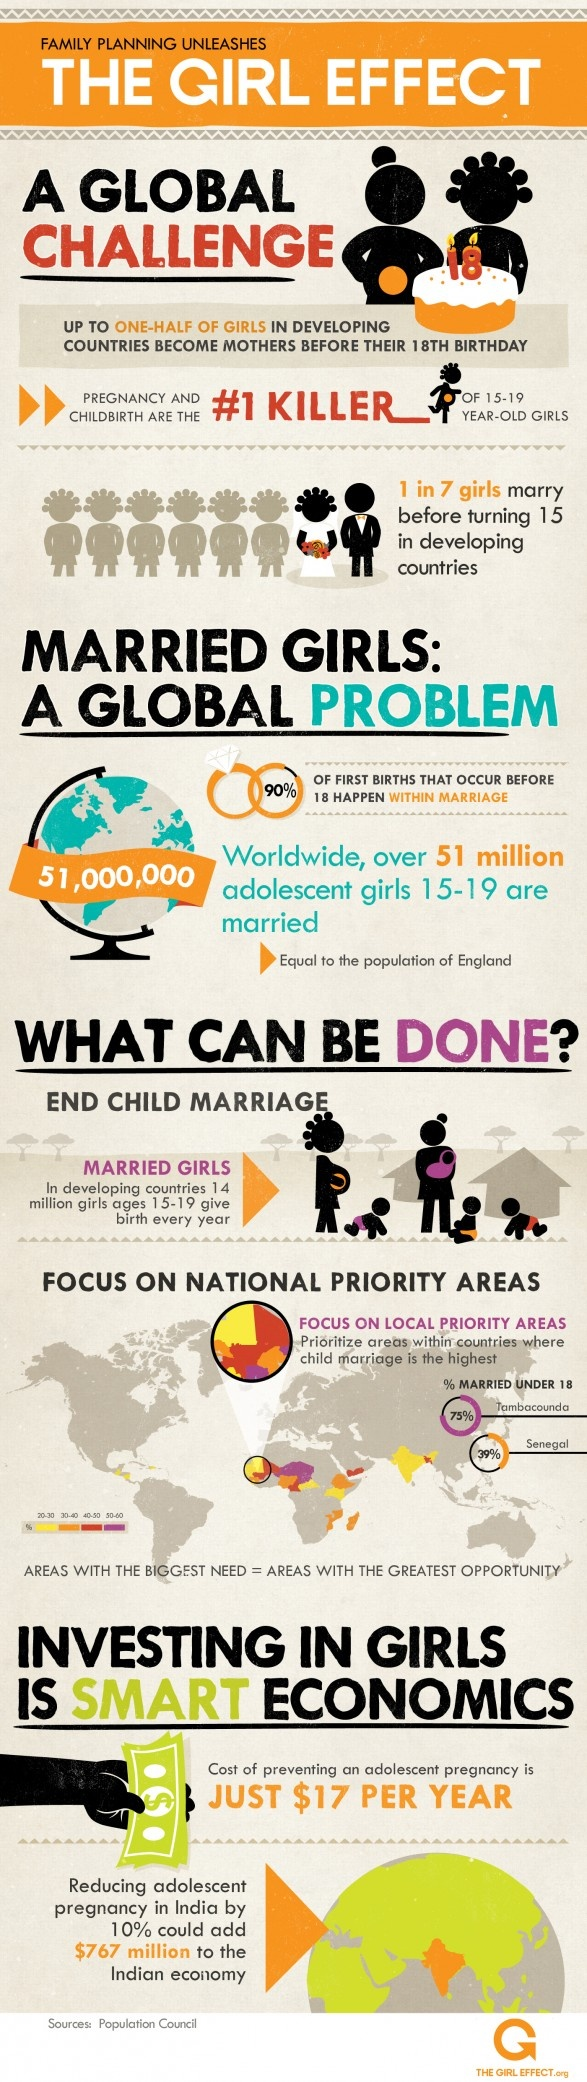 the girl effect: Girls, Child Marriage, Planning Unleashes, Education, Families, Infographics, Design, Social Justice